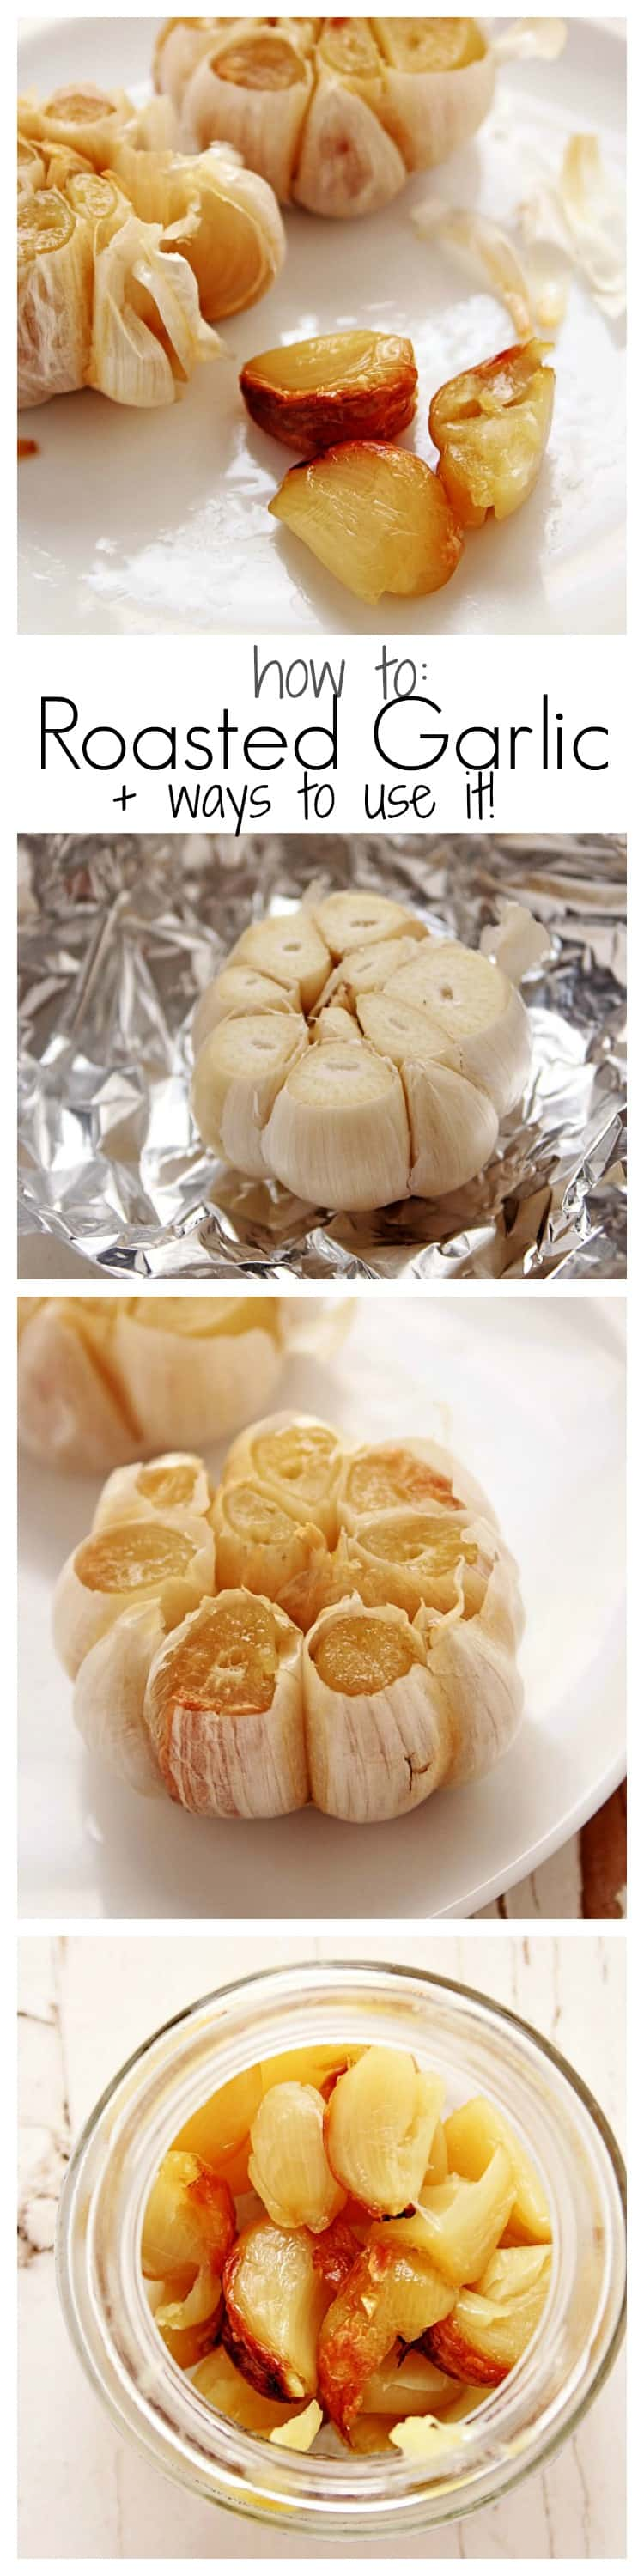 and recipes how to roast garlic the pioneer woman how to roast garlic ...